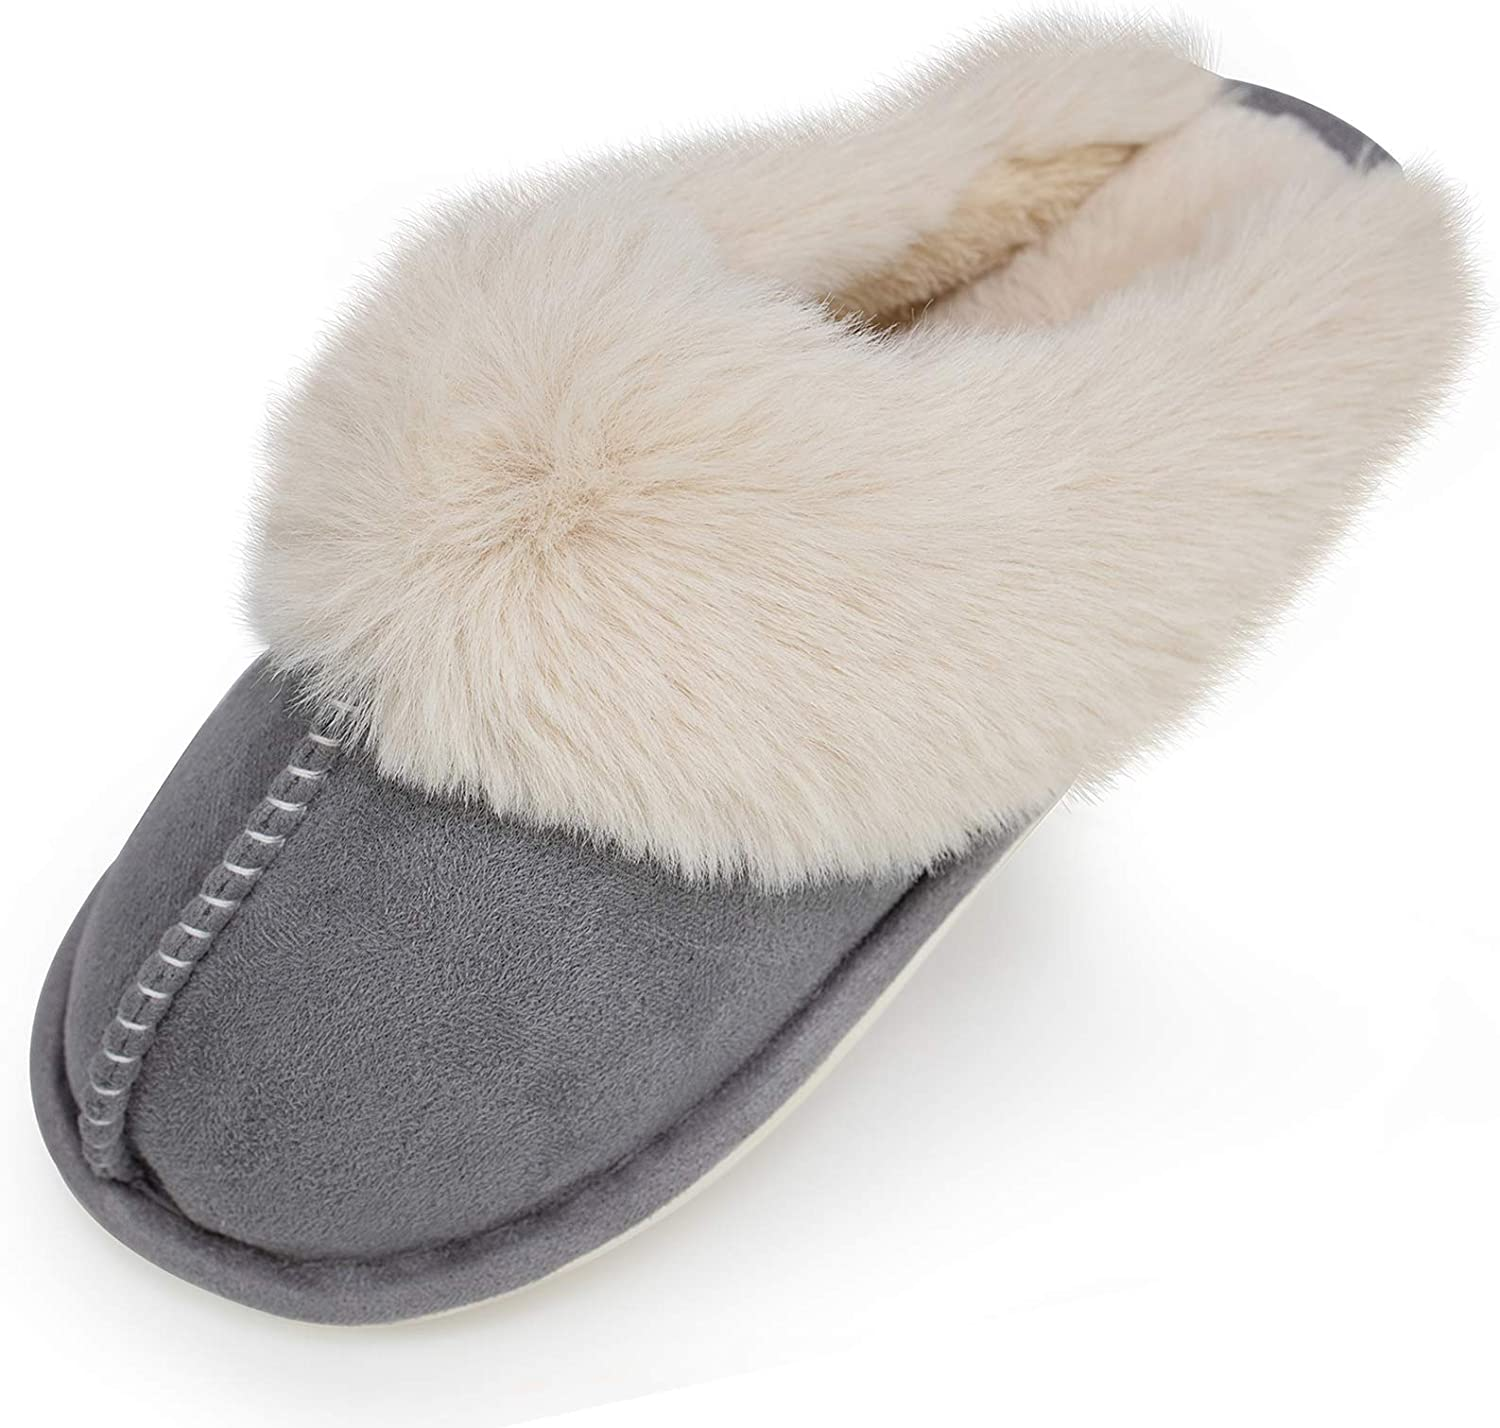 Womens Comfy Slippers Faux Fur House Shoes Indoor Outdoor Bedroom Warm Lady Memory Foam Fuzzy Slippers Winter